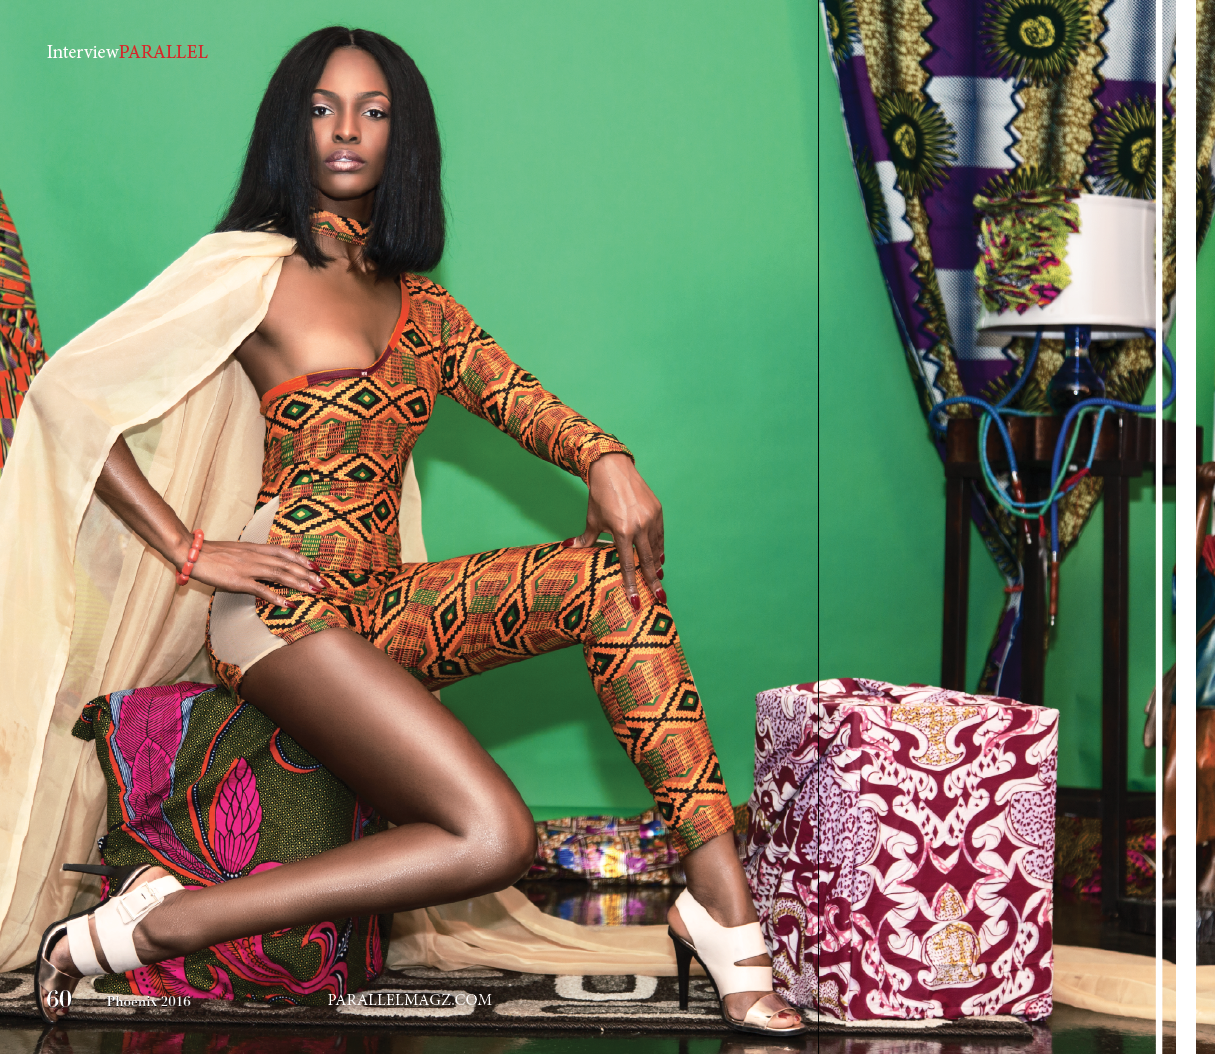 Mame Adjei %22The Multiplicity of Melanin%22 for Parallel Magazine Phoenix Issue 2016 10